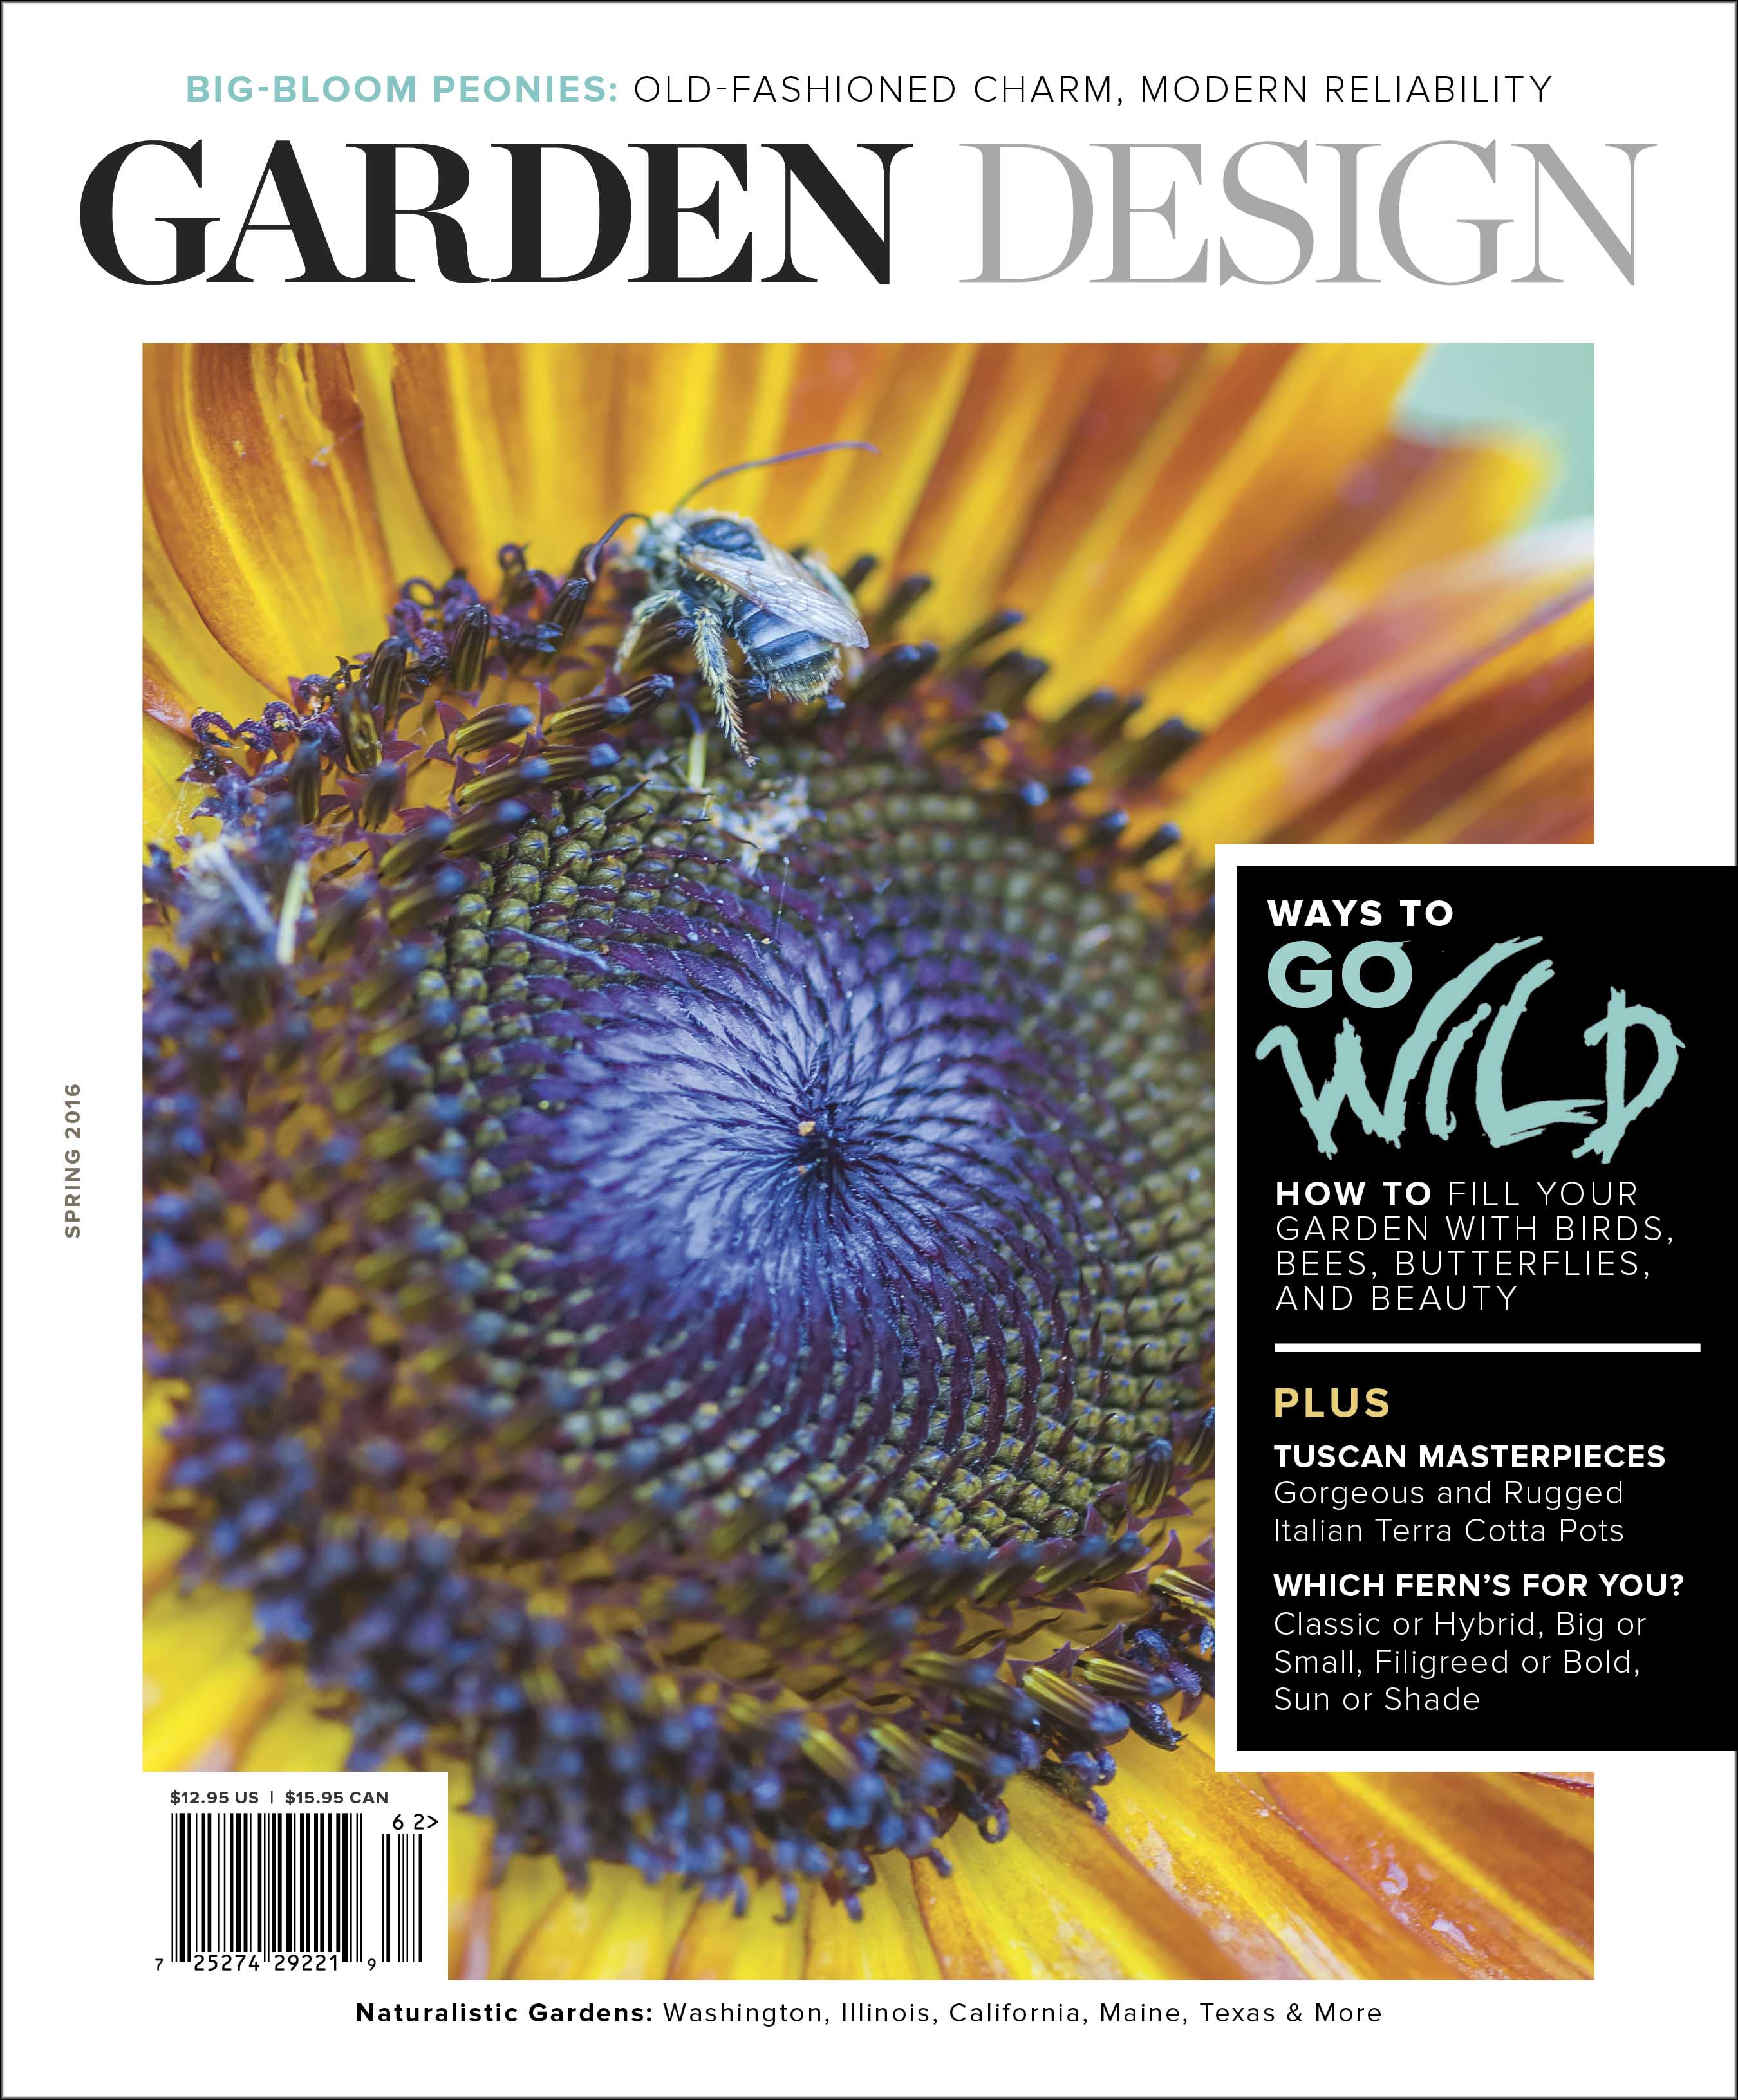 Garden Design Magazine with Thadd Orr